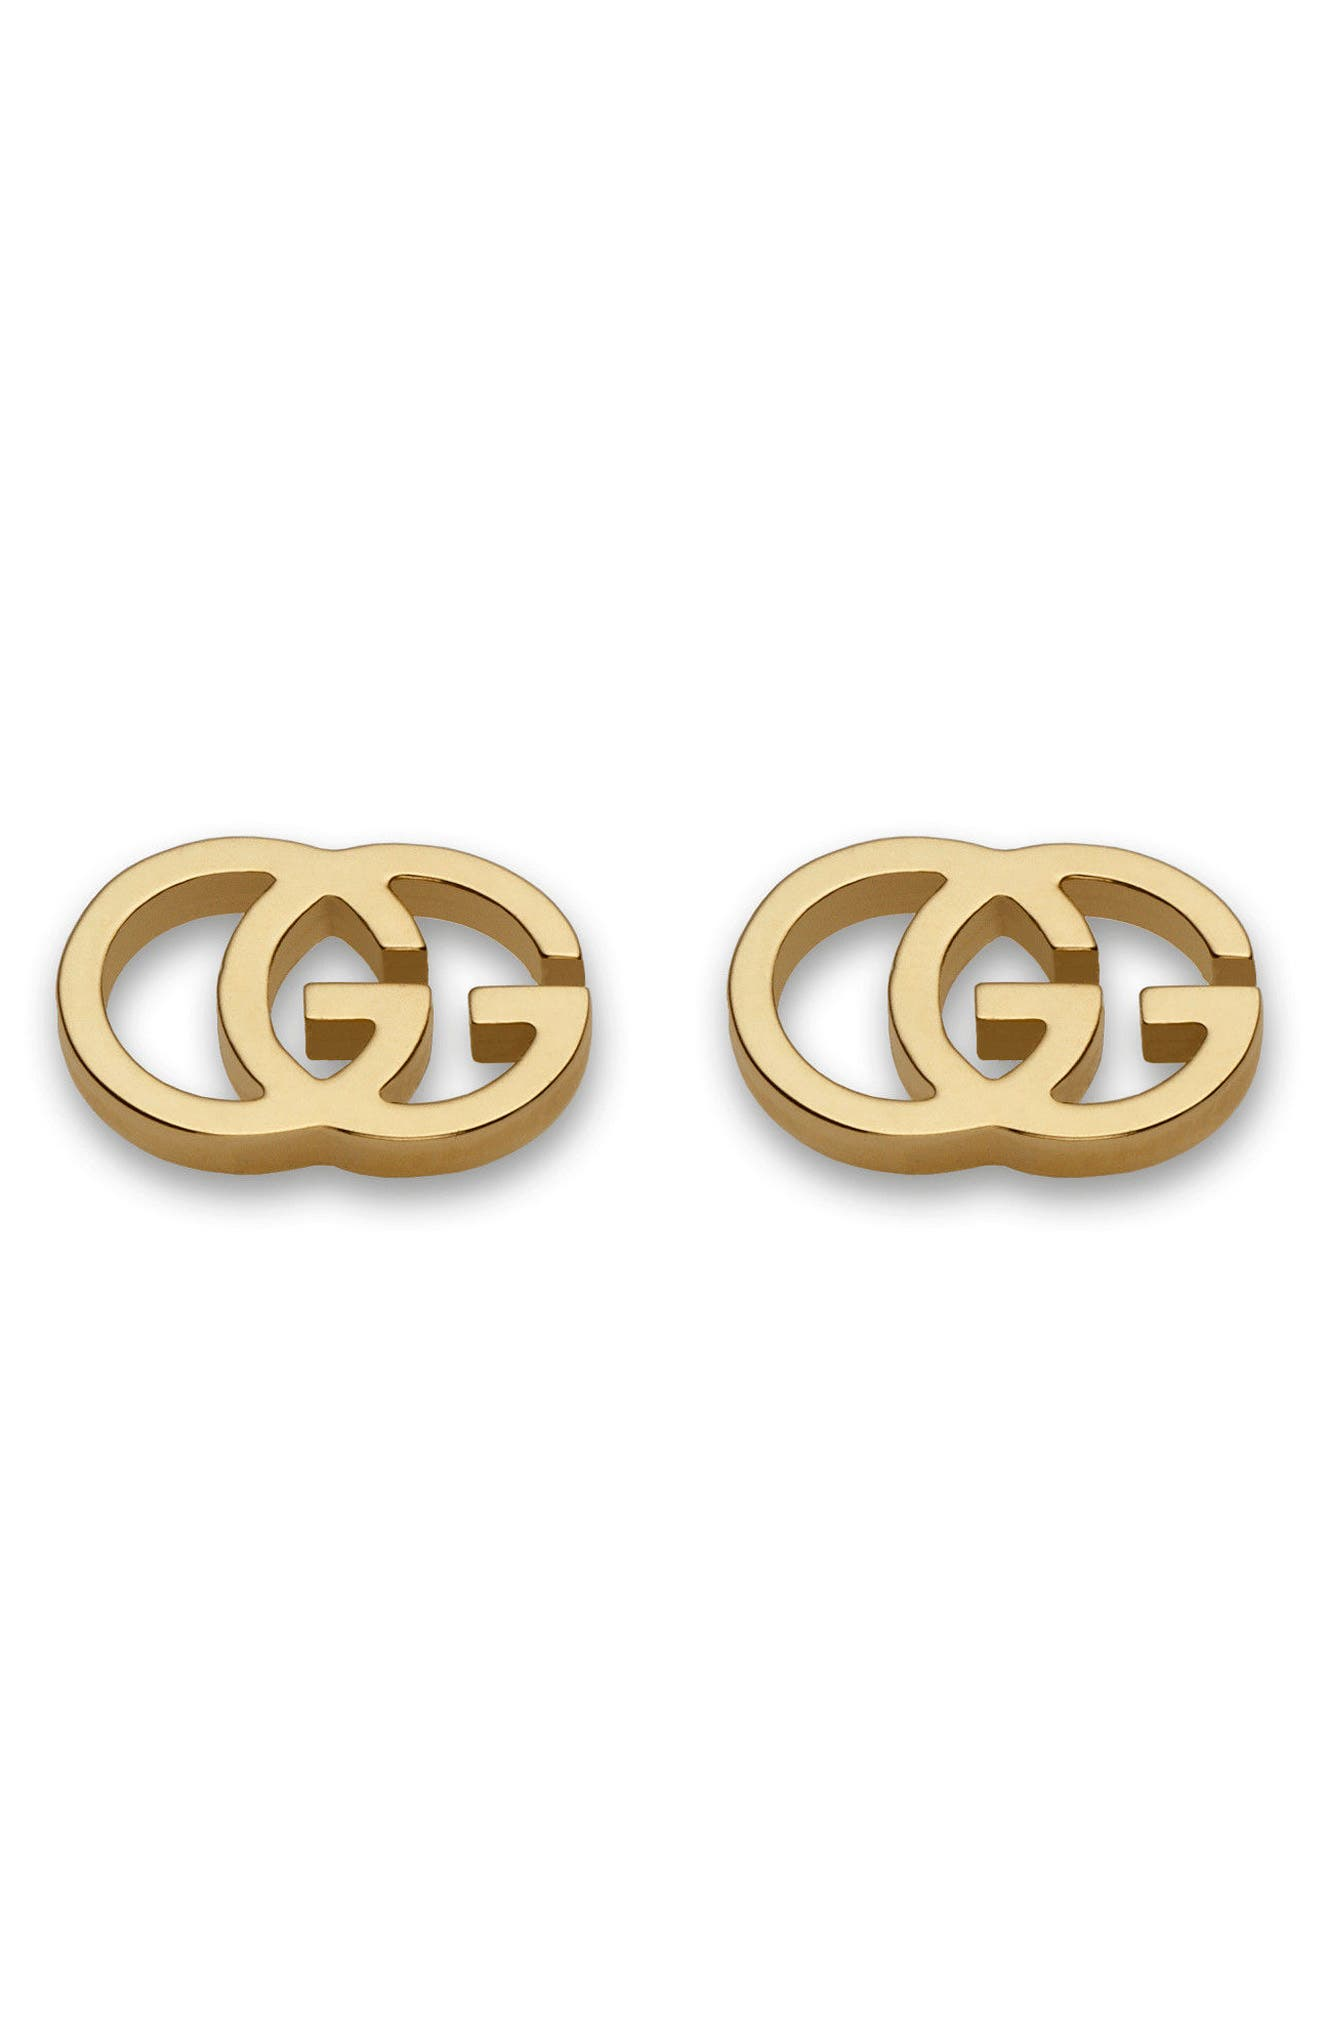 Double-G Stud Earrings,                         Main,                         color, YELLOW GOLD